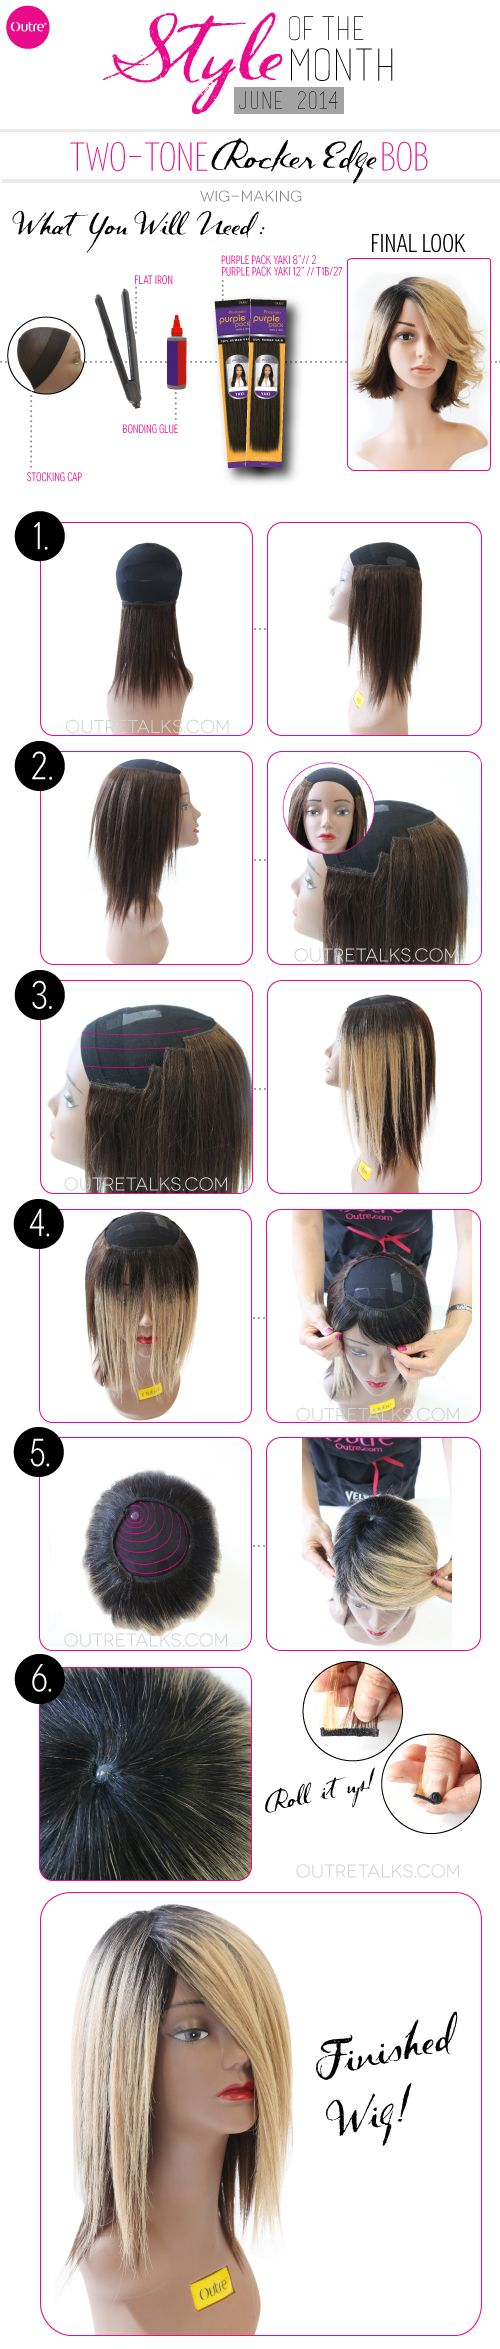 best weave images on pinterest make up looks wigs and hair dos